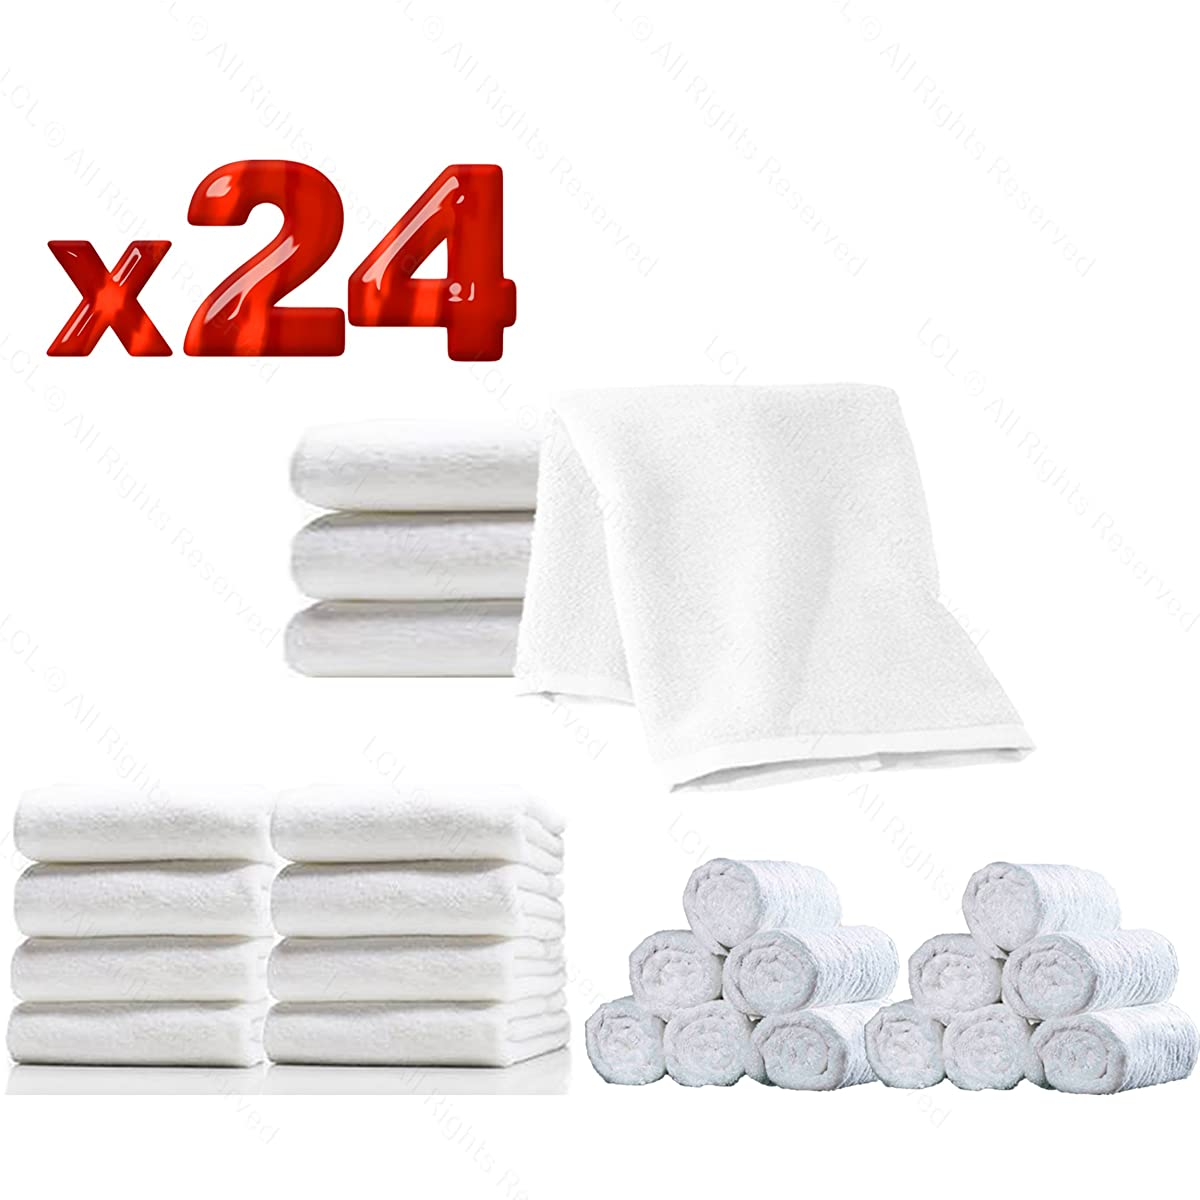 High Capacity Hot Towel & UV Sterilizer Cabinet 24 Ultra-Soft Microfiber Facial Towels Included